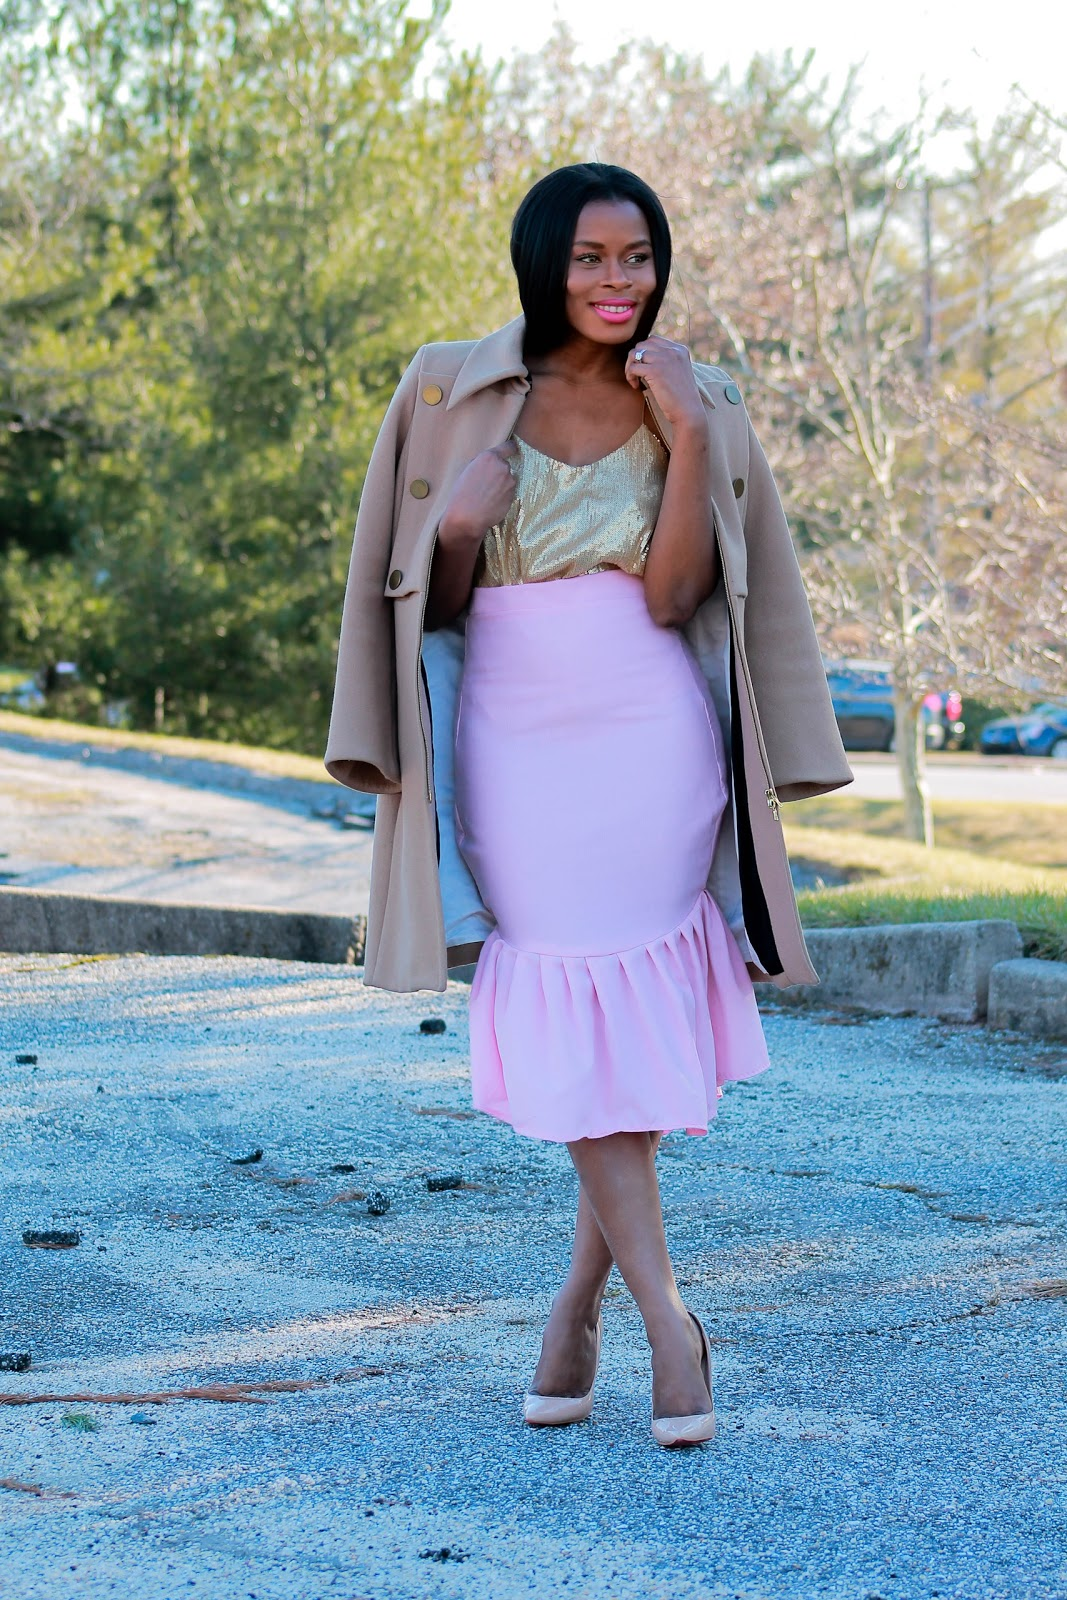 Peplum Skirt: How Do Fashion Bloggers Afford All of these Expensive Items?